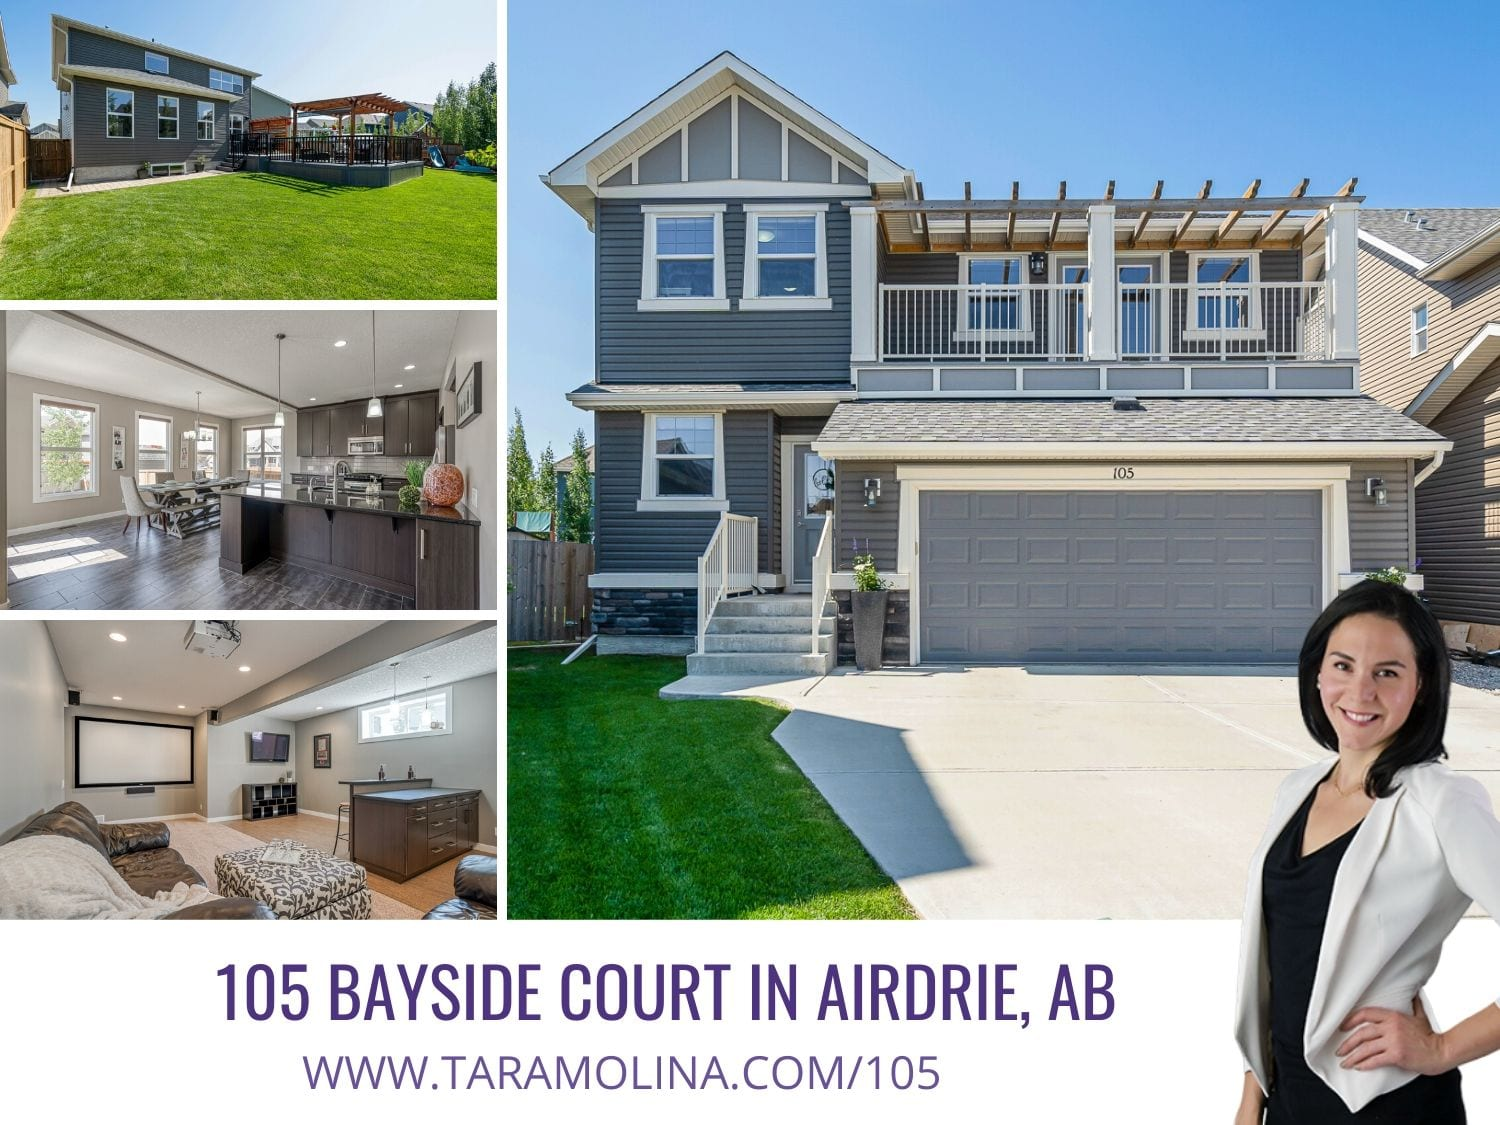 105 Bayside Court in Airdrie Ab